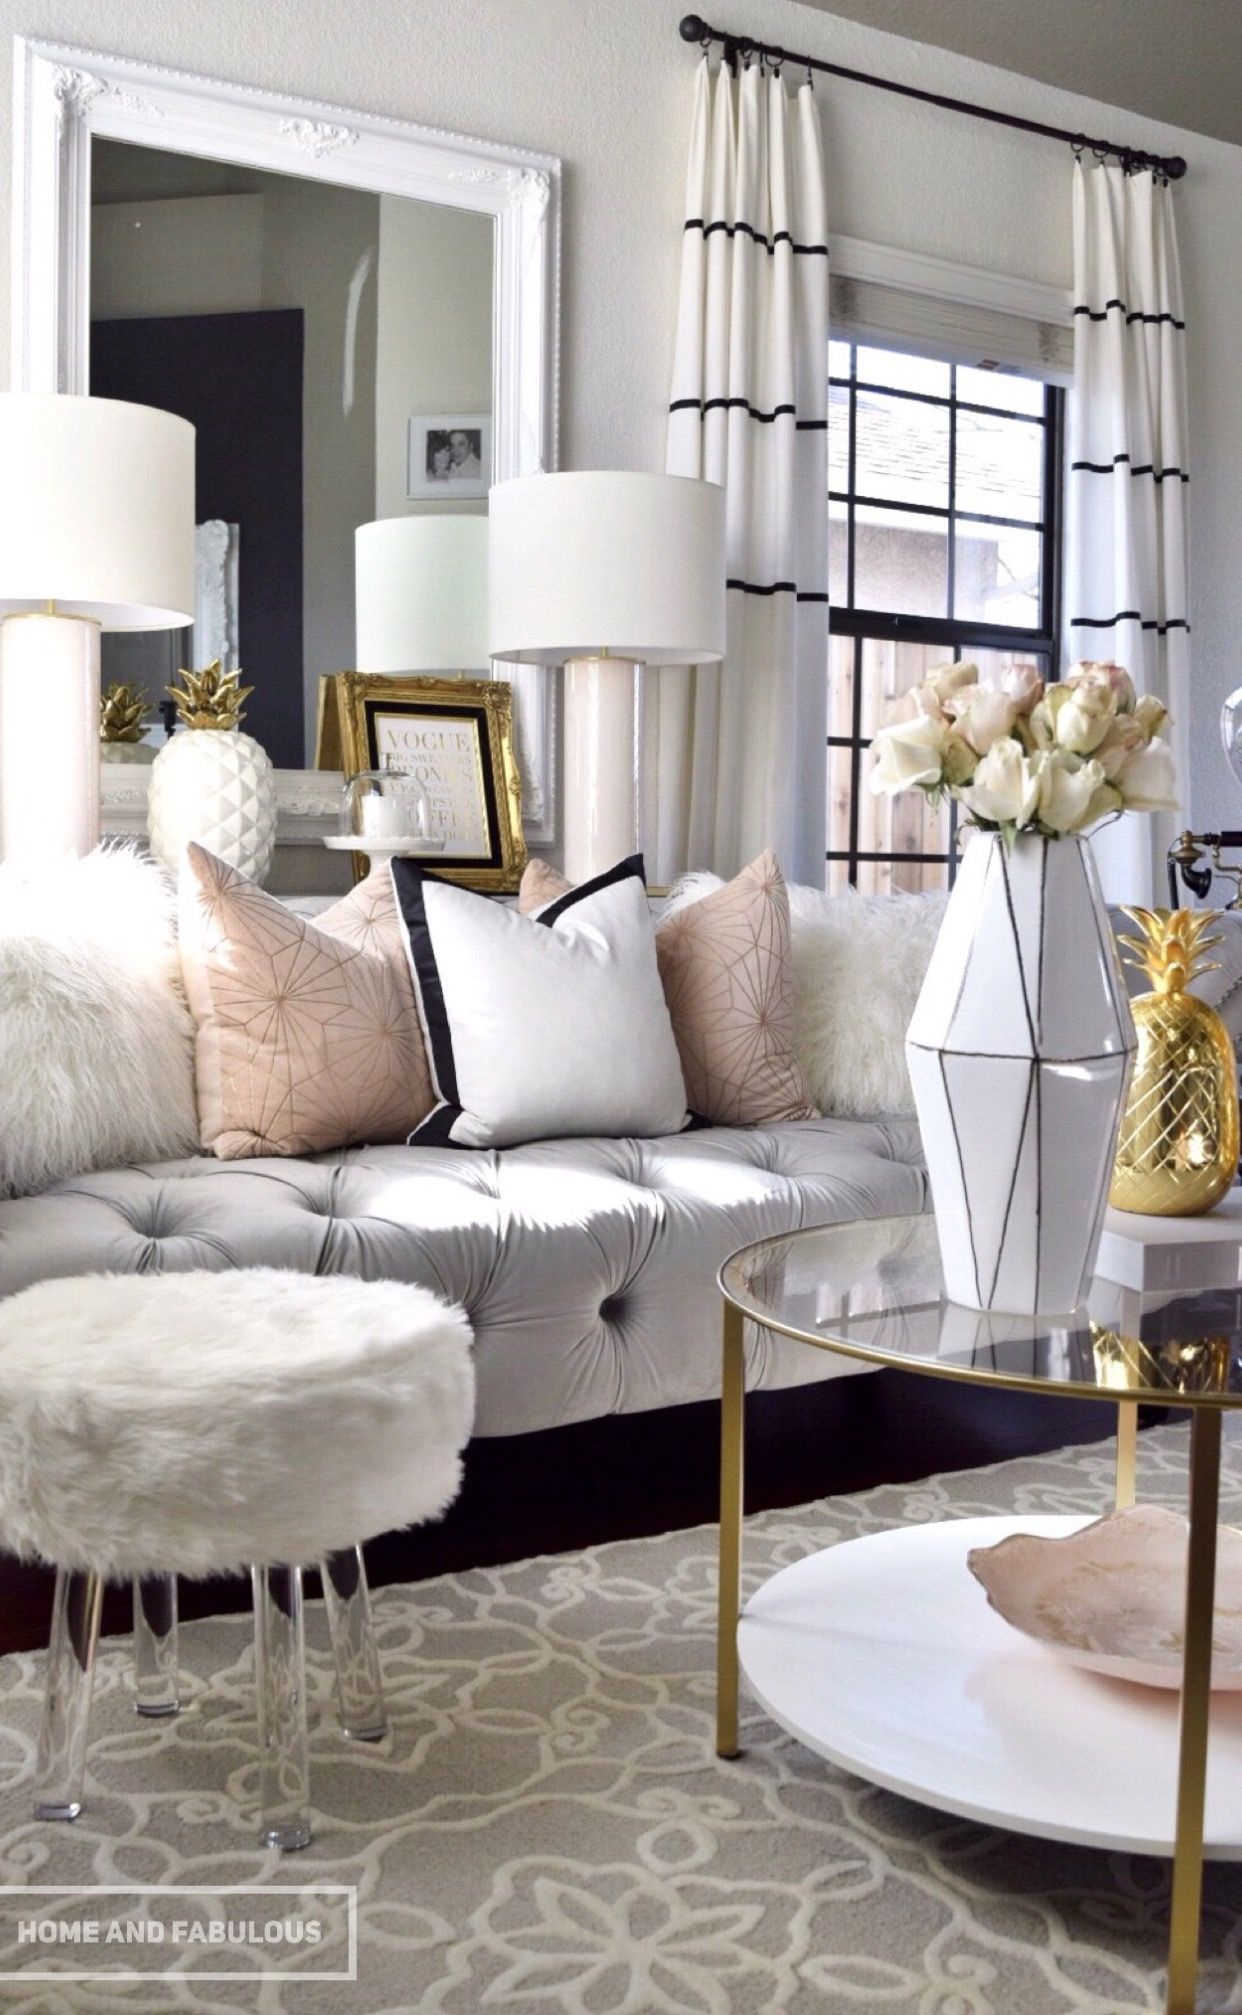 White Sofa Living Room Molding How One Couch Inspired A Transformation Homes Black Rod And Curtains With Narrow Stripes